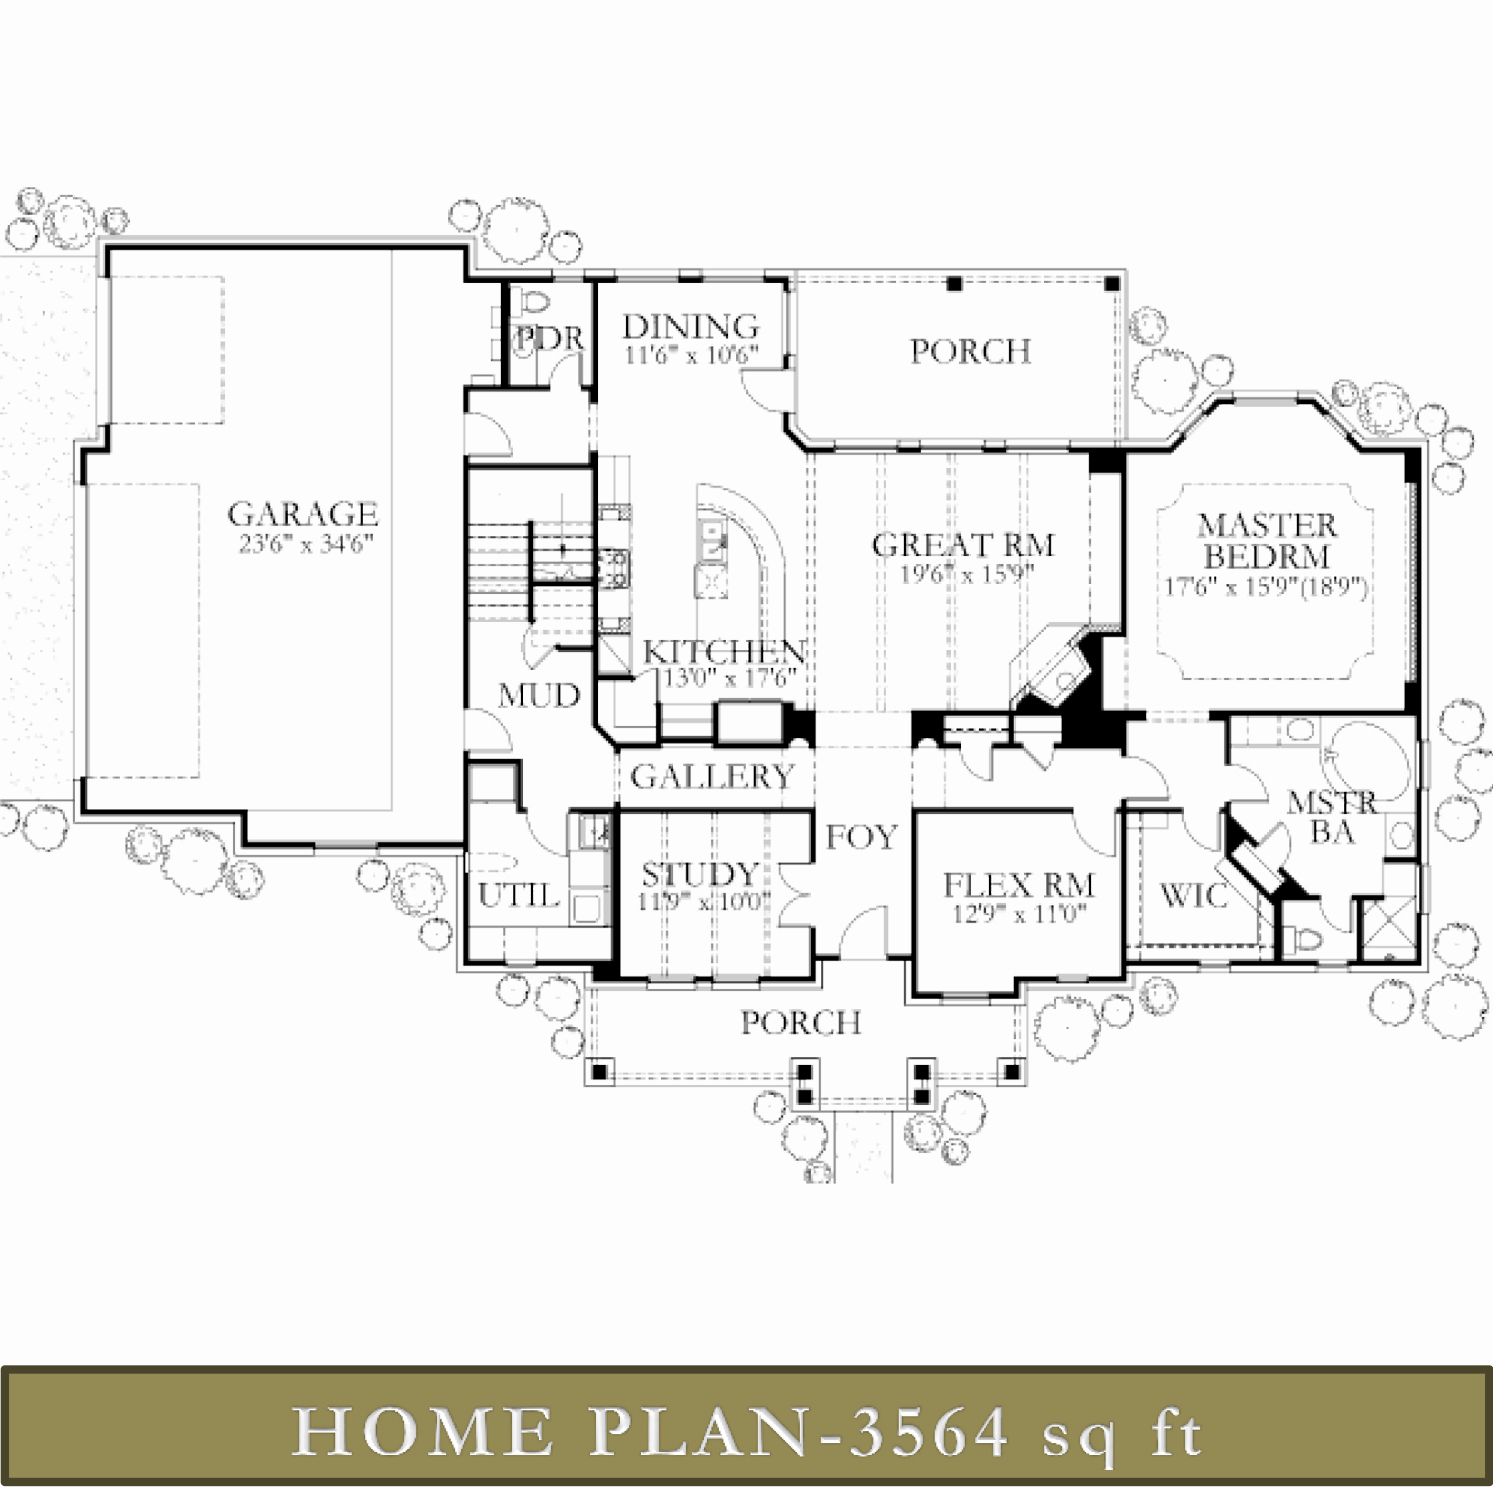 3500 4000 sq ft homes glazier homes for House plans 3500 sq ft